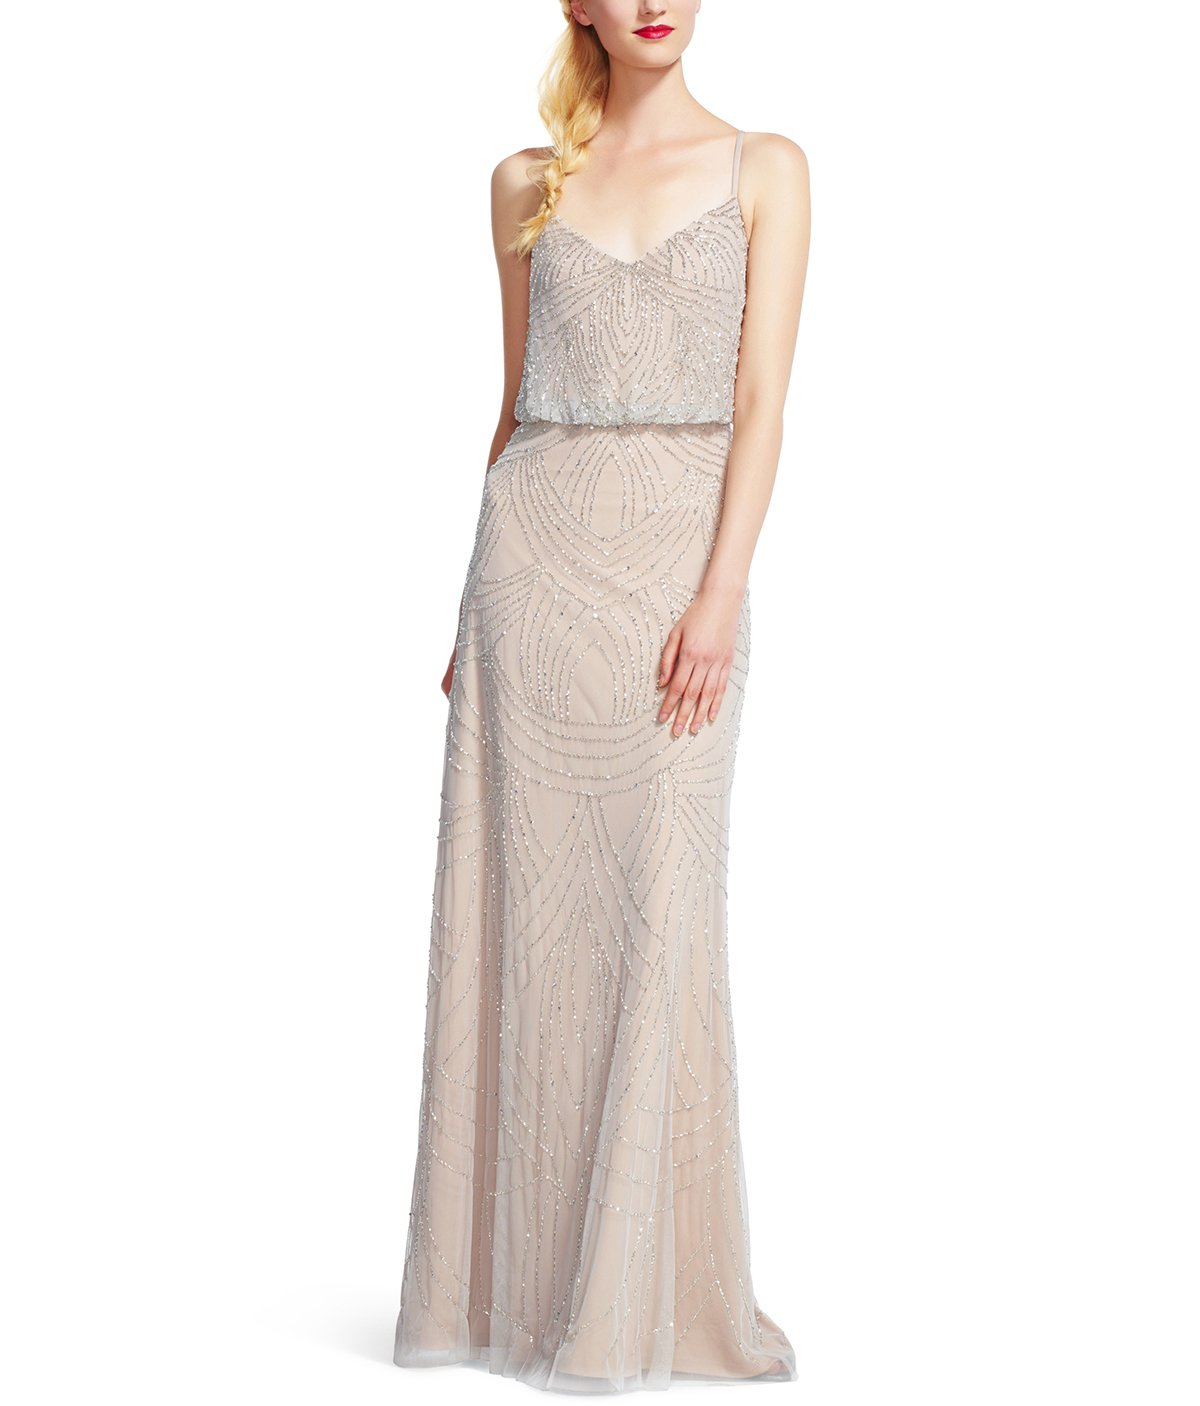 Adrianna Papell Beaded Blouson Gown in Silver Nude Bridesmaid Dress ...